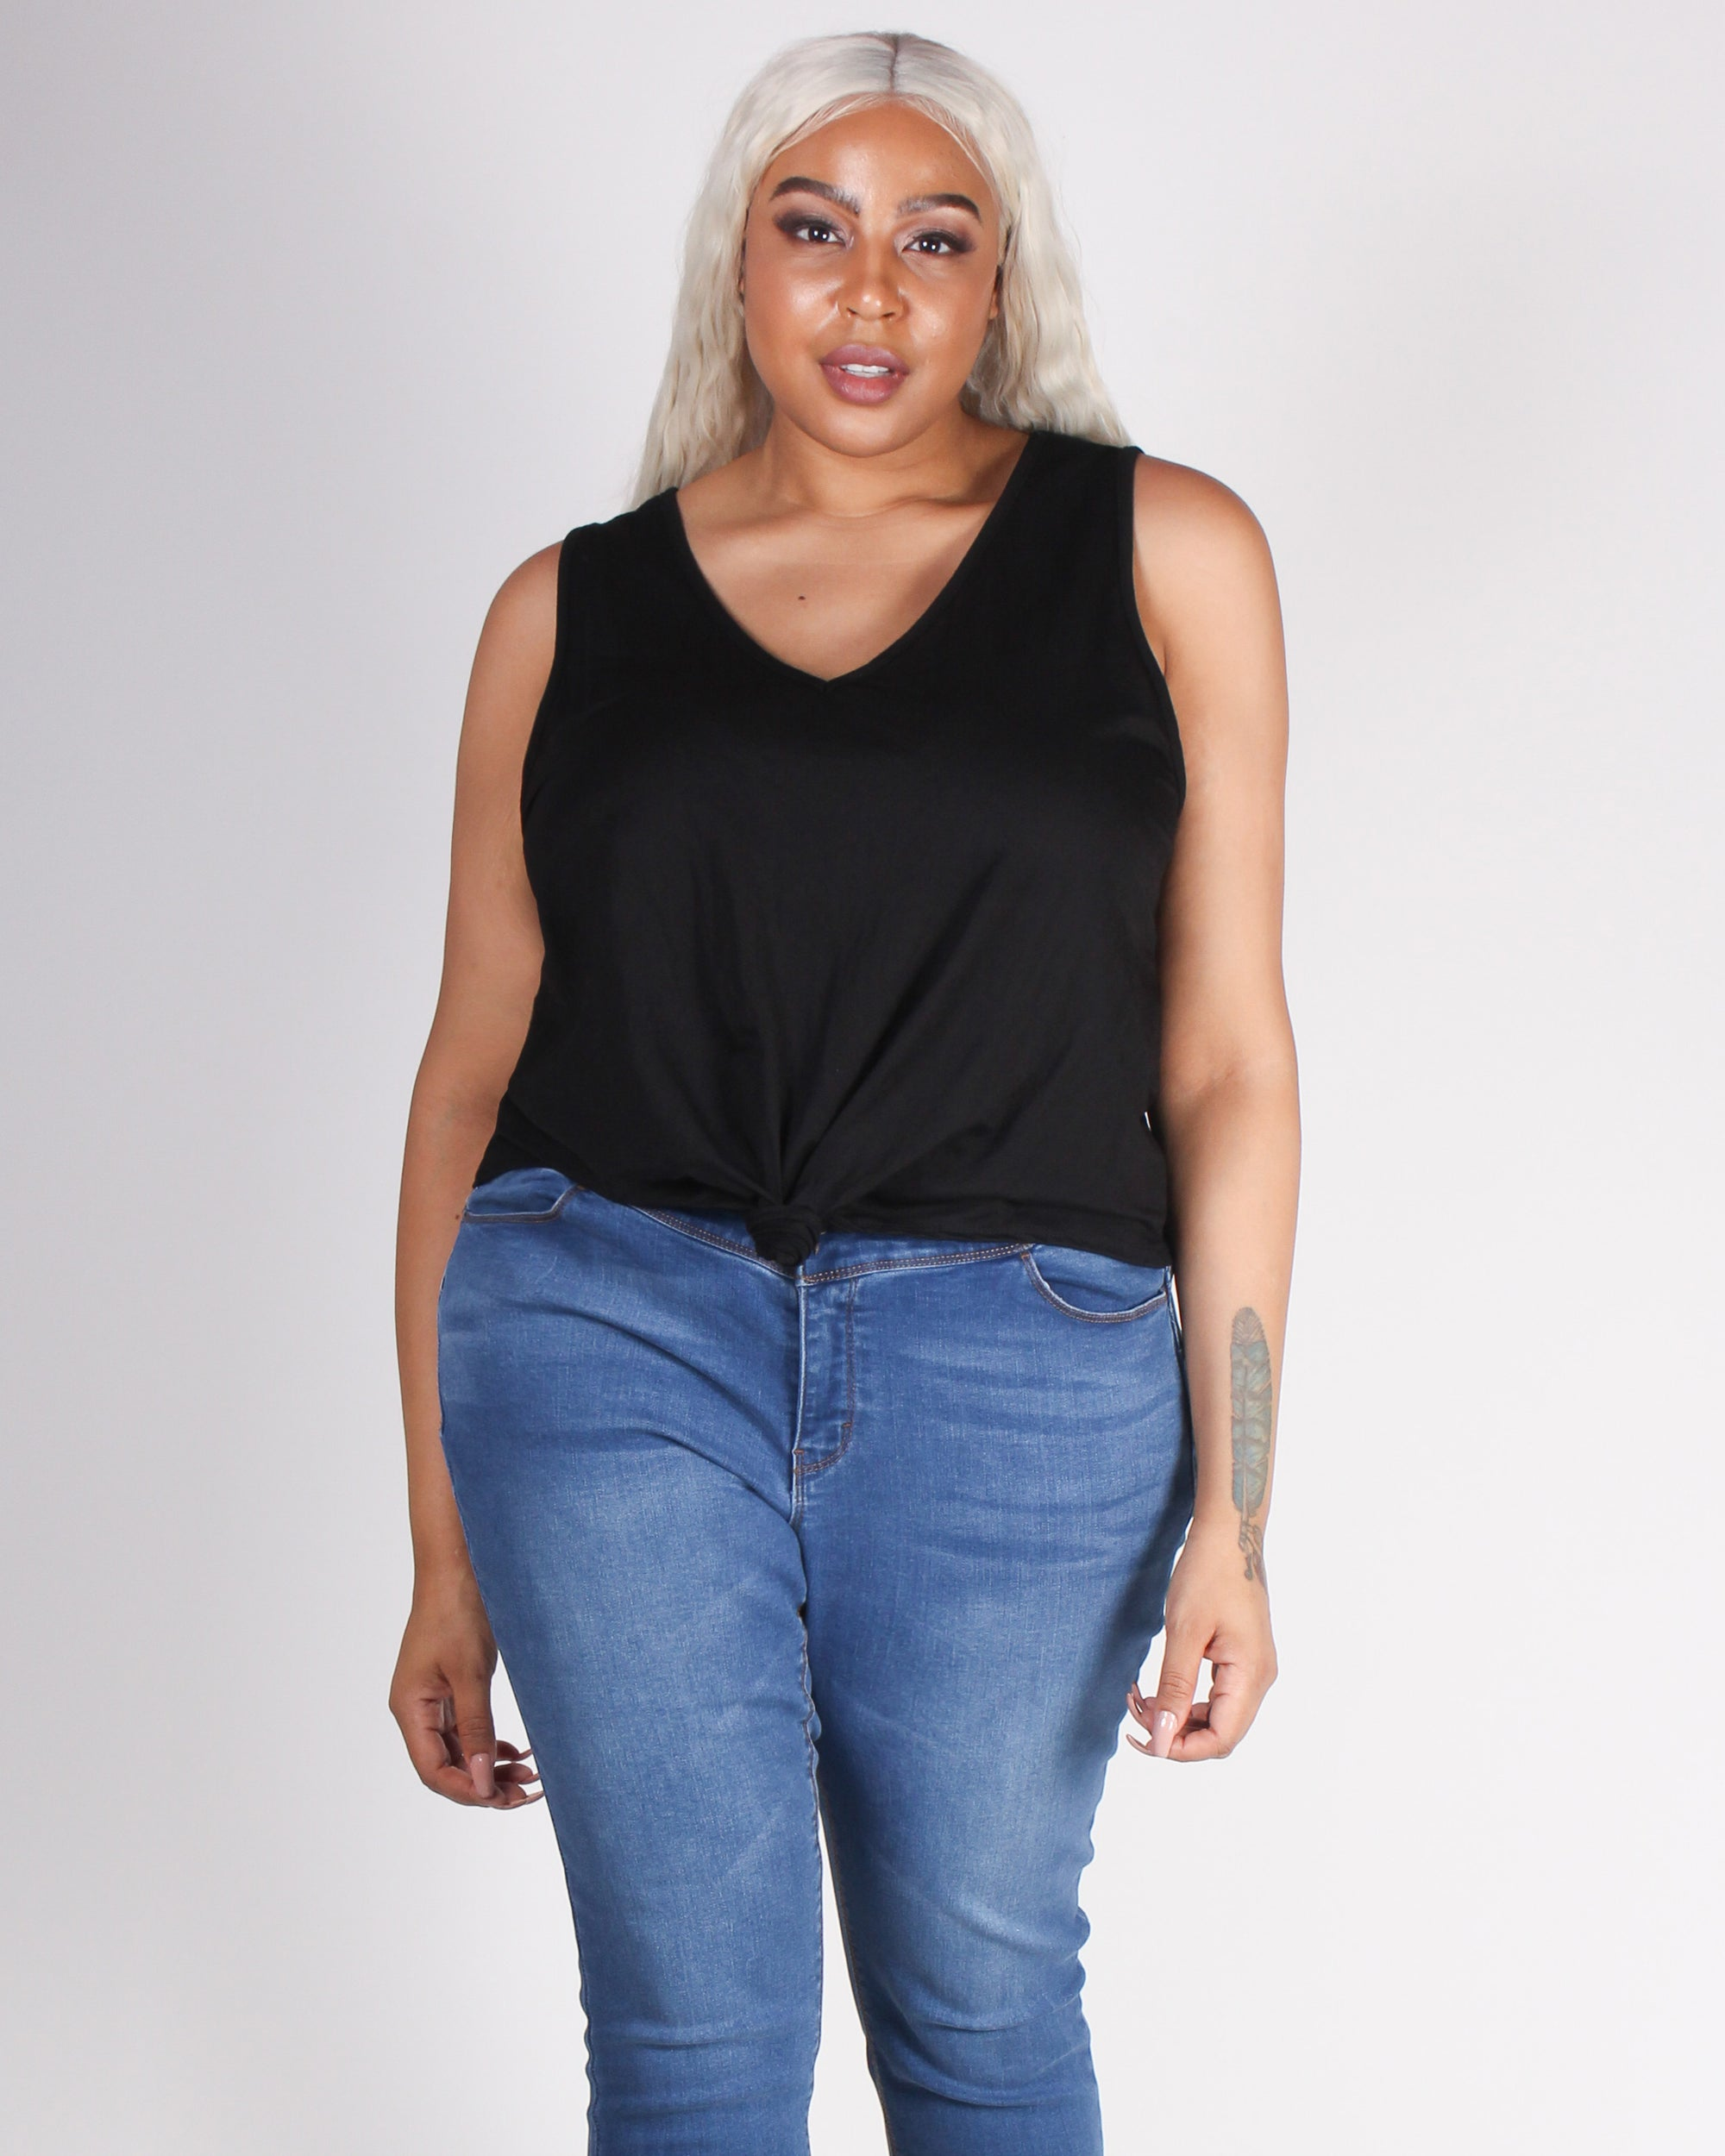 Fashion Q Shop Q Today the Game Changed Top (Black) ZA1597